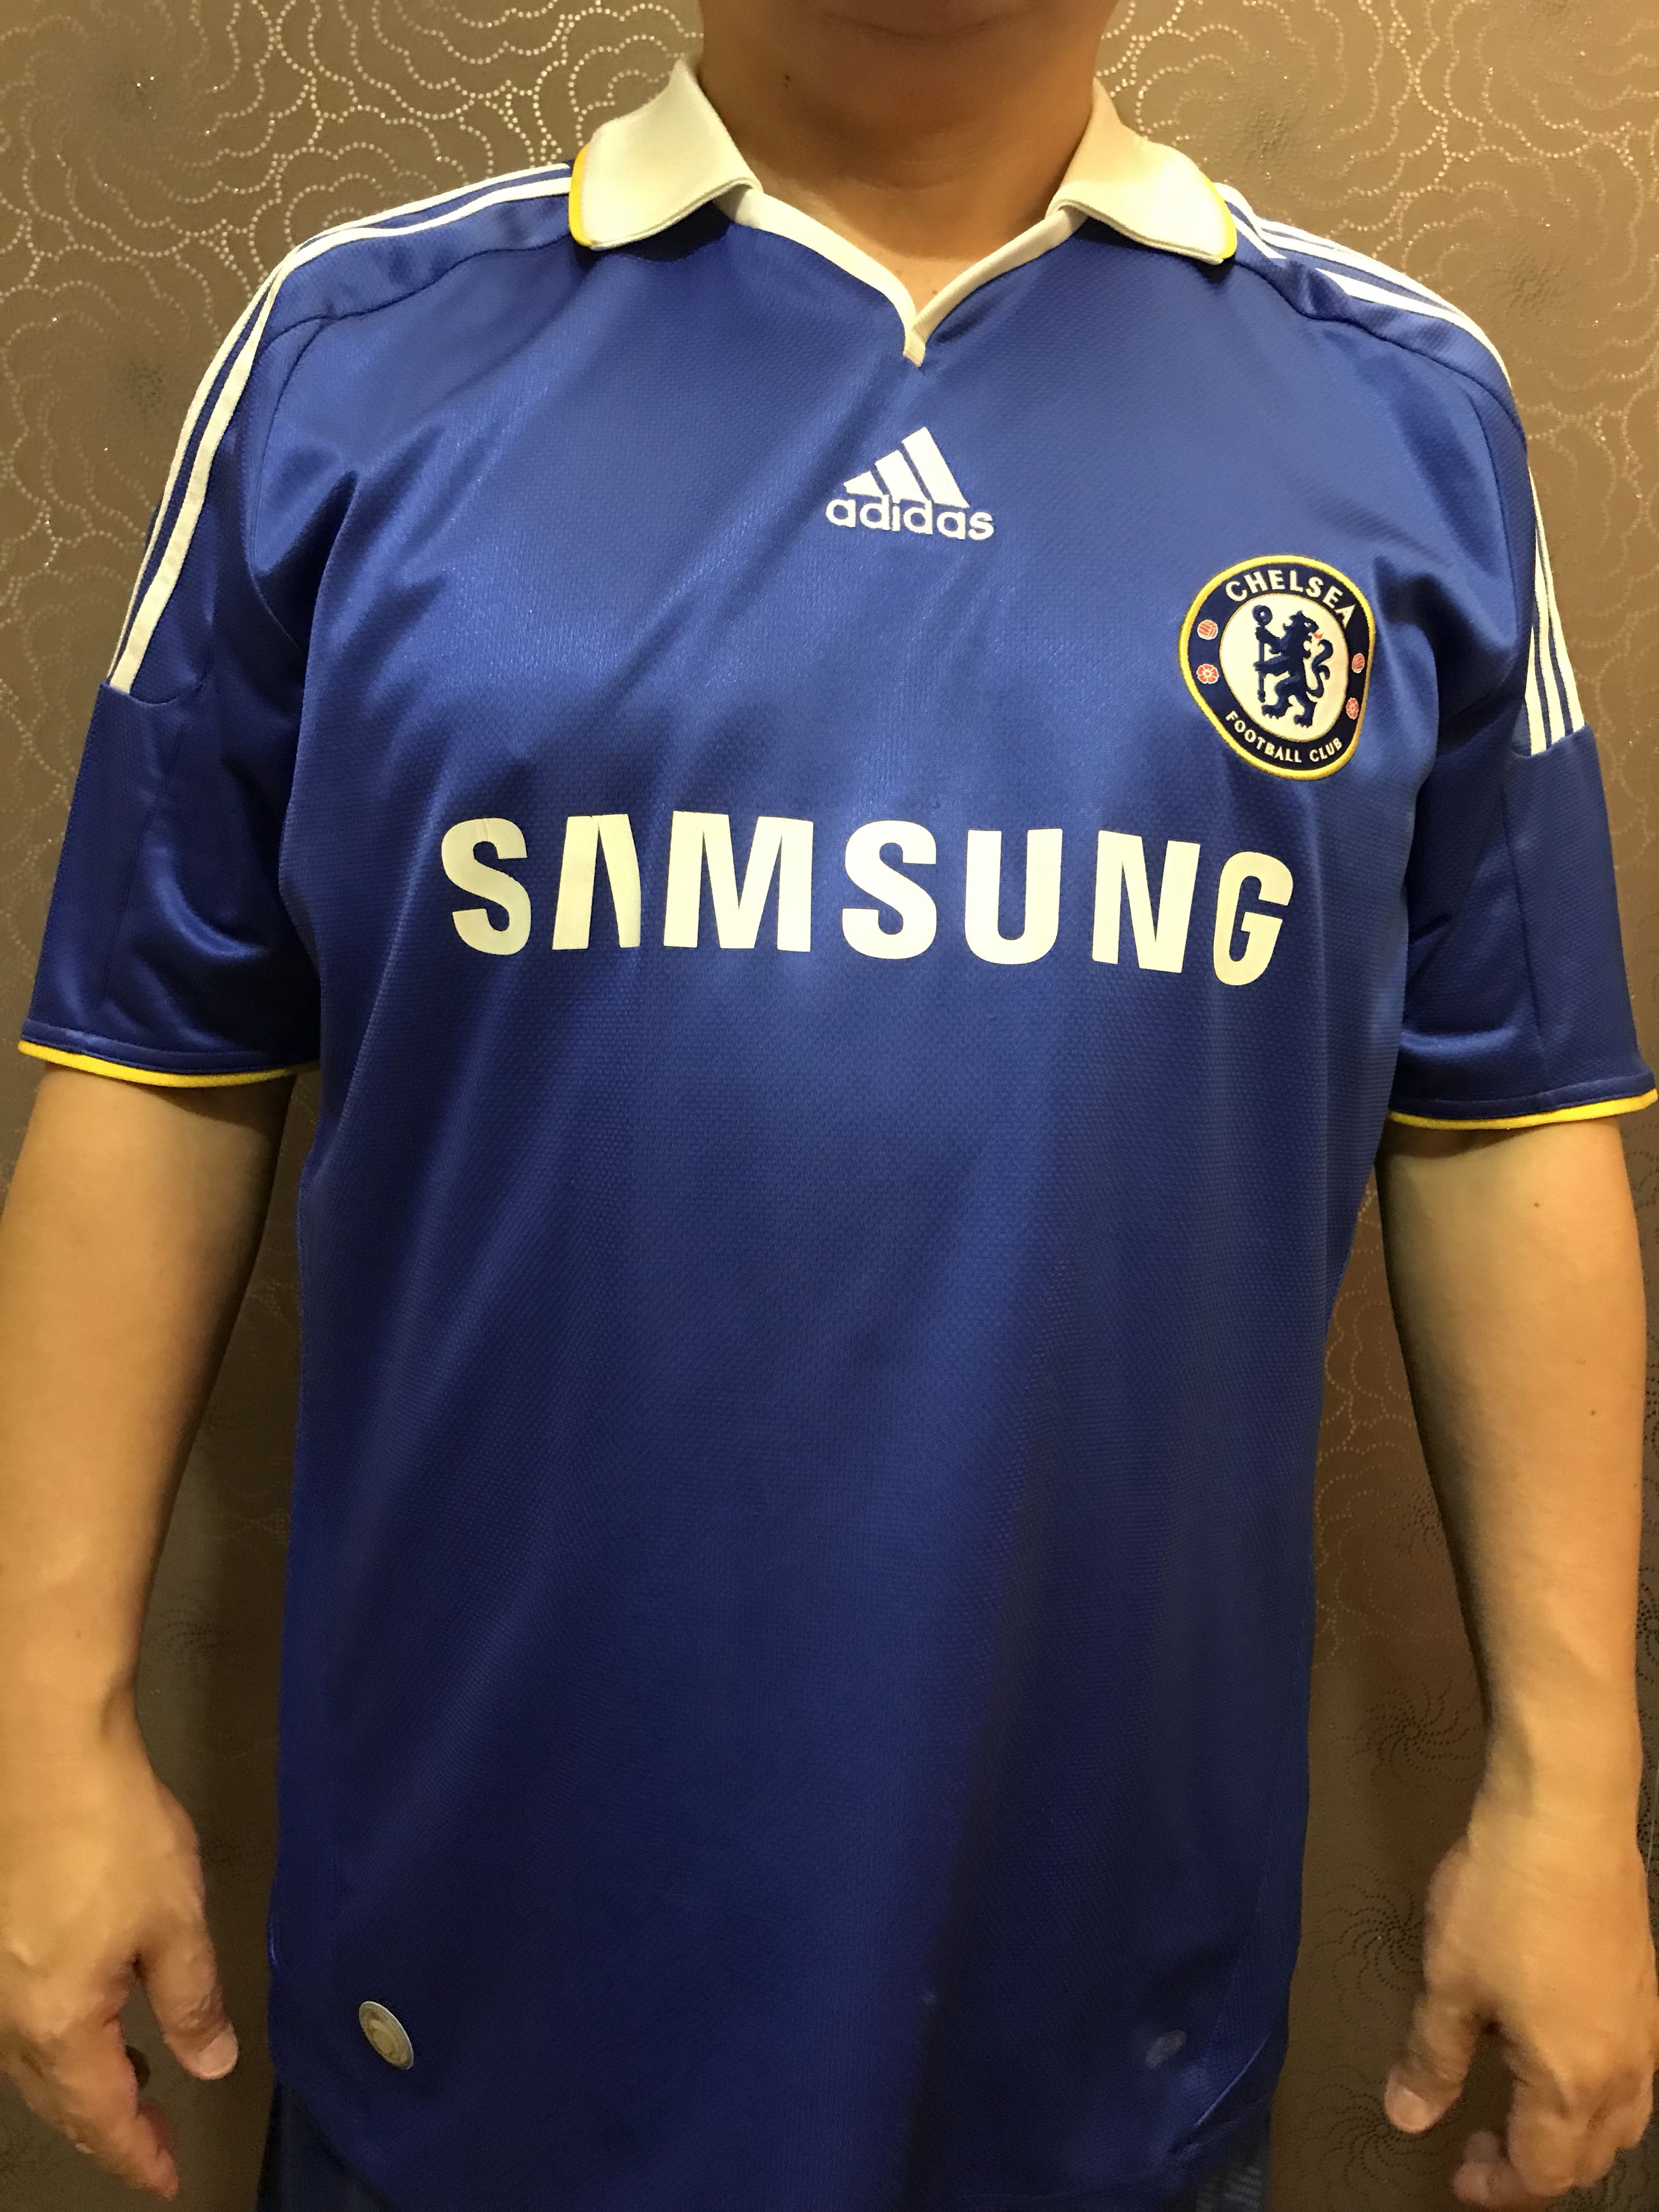 7a2f3c39727 2008-09 Chelsea Home Shirt by Adidas